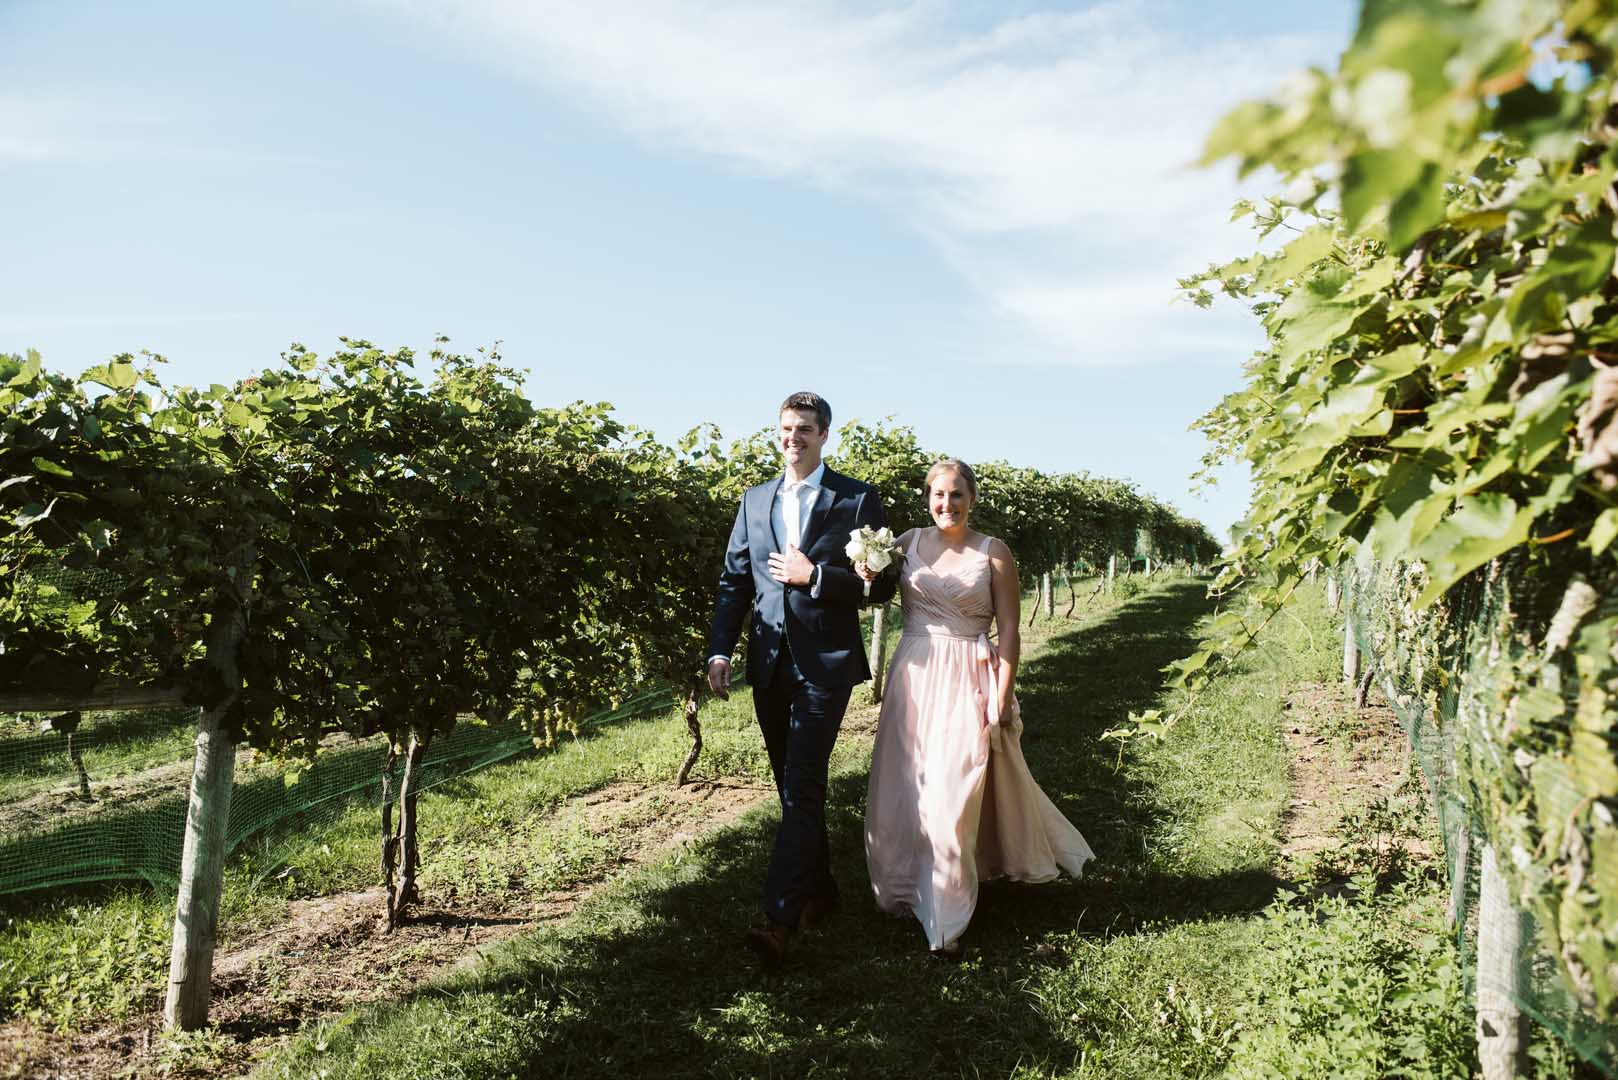 Two members of the bridal party walking through the vines to the ceremony site